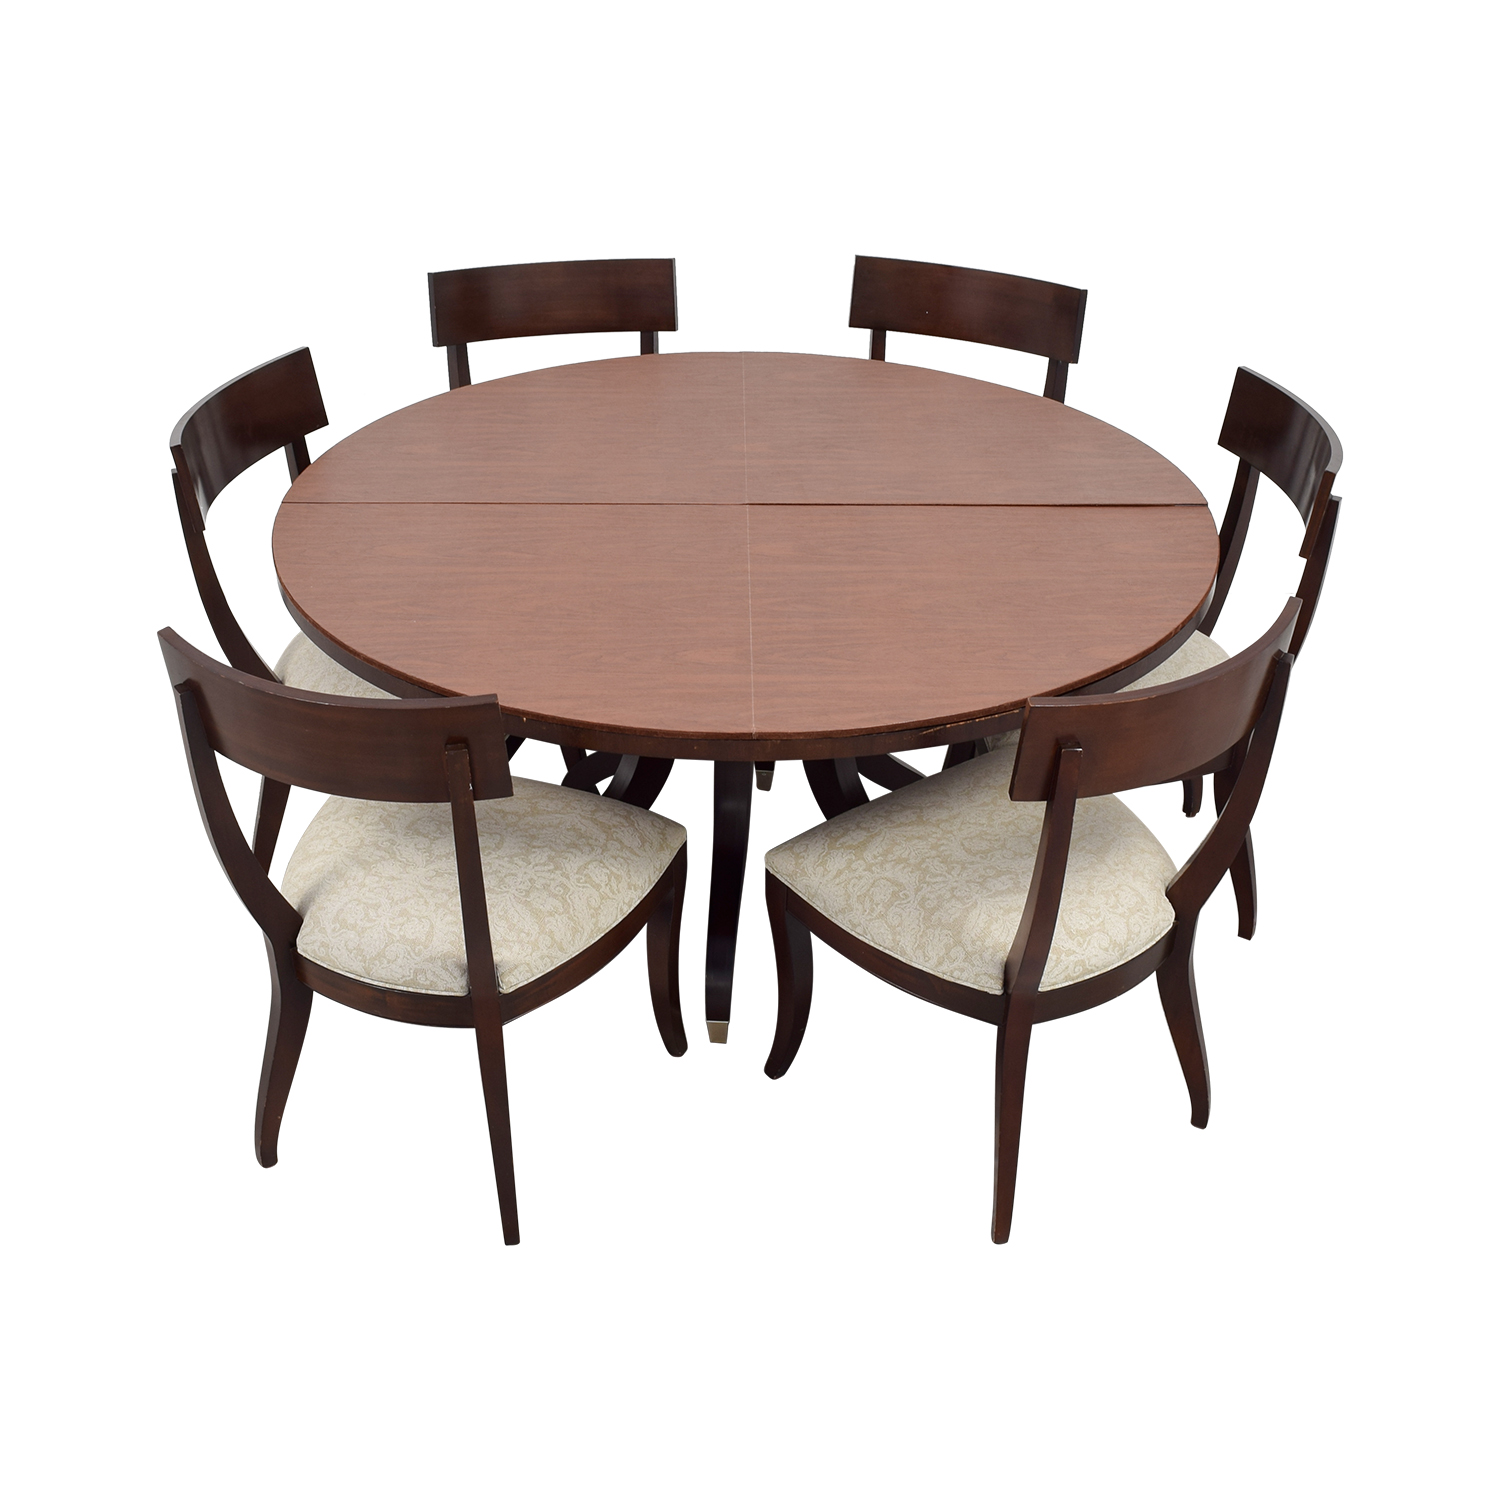 Round Dining Set With Leaf: Ethan Allen Ethan Allen Round Dining Set With